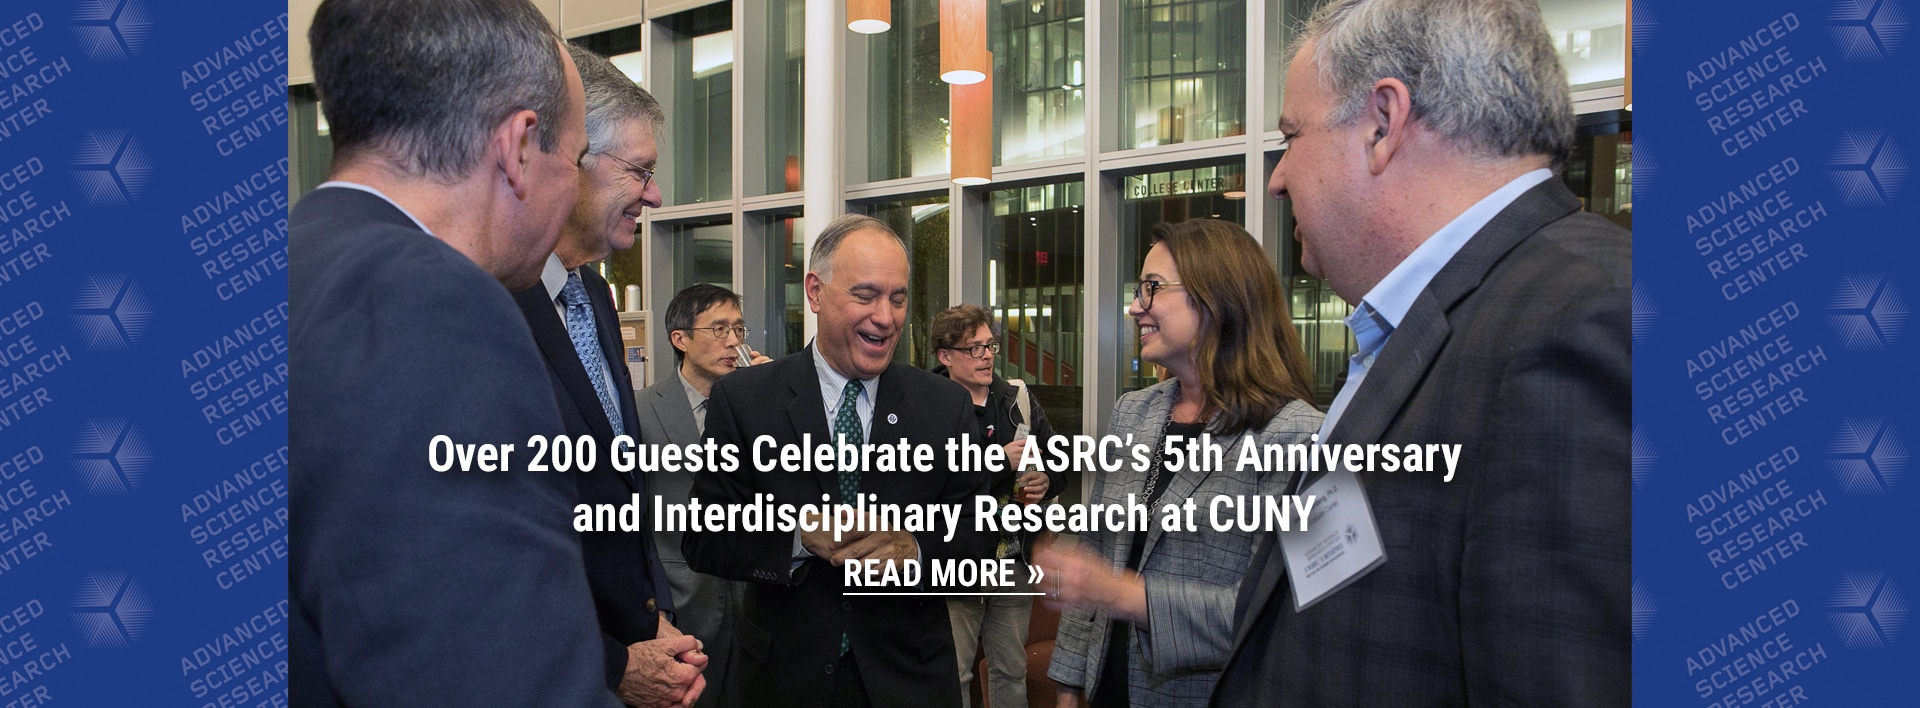 Over 200 Guests Celebrate the ASRC's 5th Anniversary and Interdisciplinary Research at CUNY